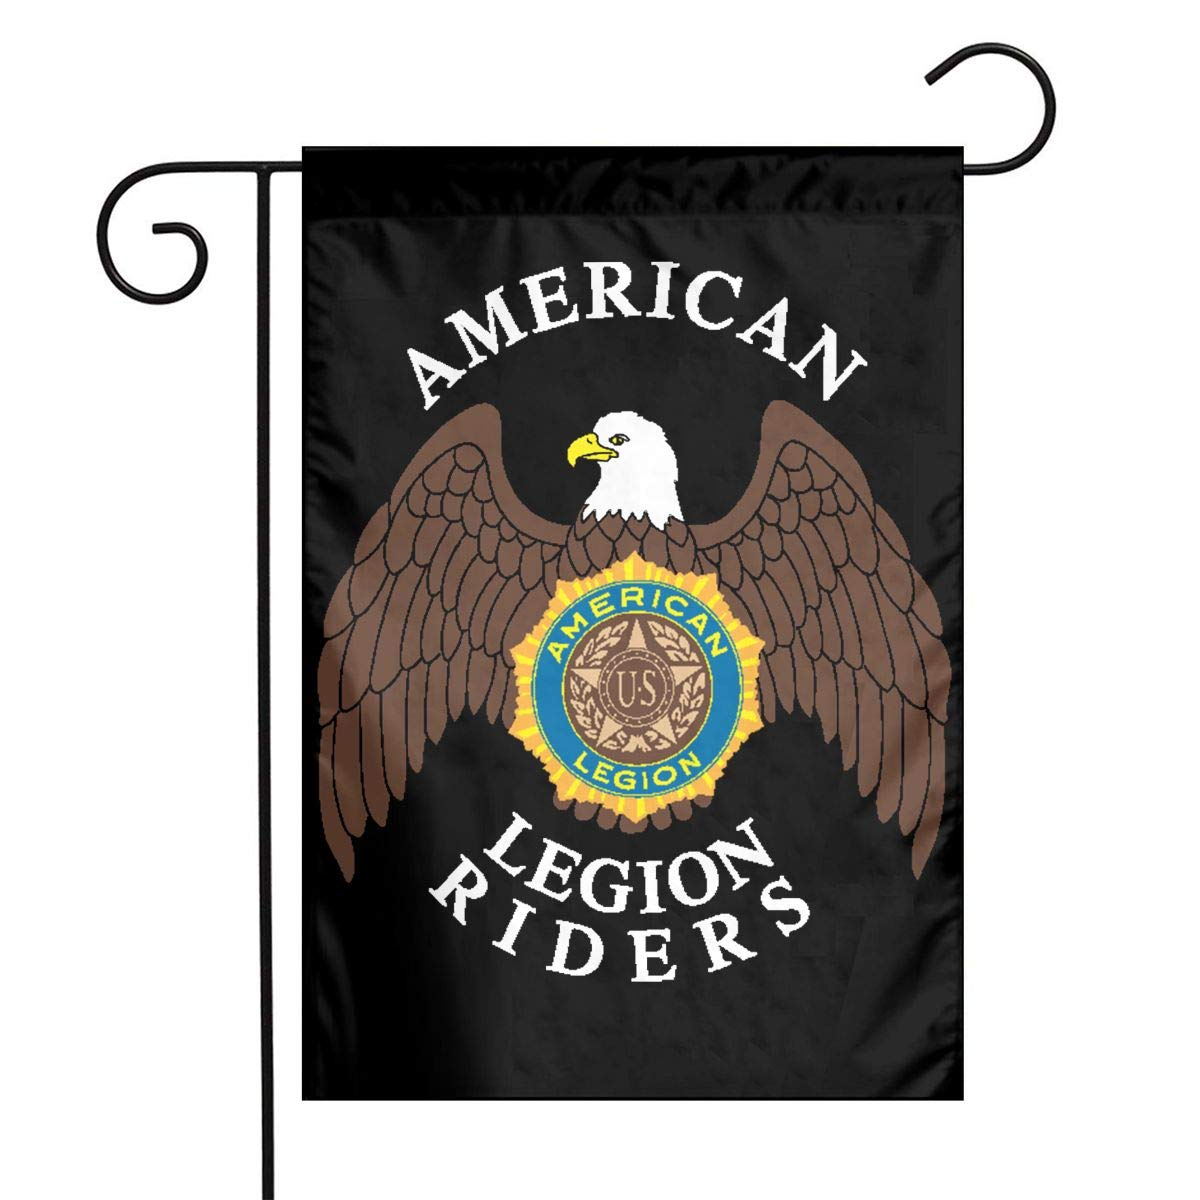 Amazon.com : HU7 JDOS7 American Legion Riders Garden Flag.